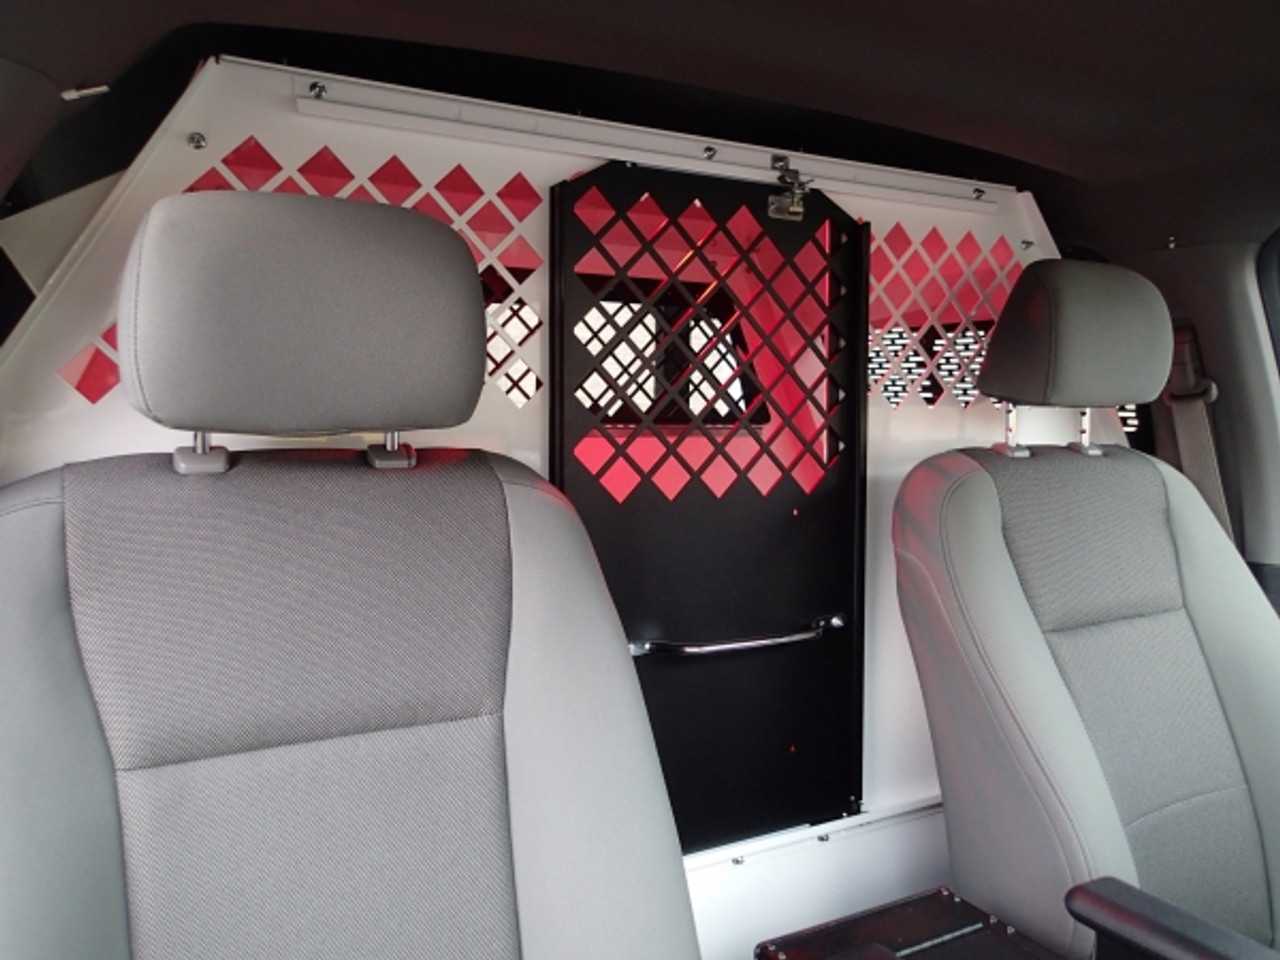 Outstanding Havis K9 F23 K9 Dog Kennel Transport System For 2015 2019 Ford F 150 And F 150 Special Service Vehicle Ssv Crew Cab Pickup 2017 2019 F 250 F 350 Ocoug Best Dining Table And Chair Ideas Images Ocougorg